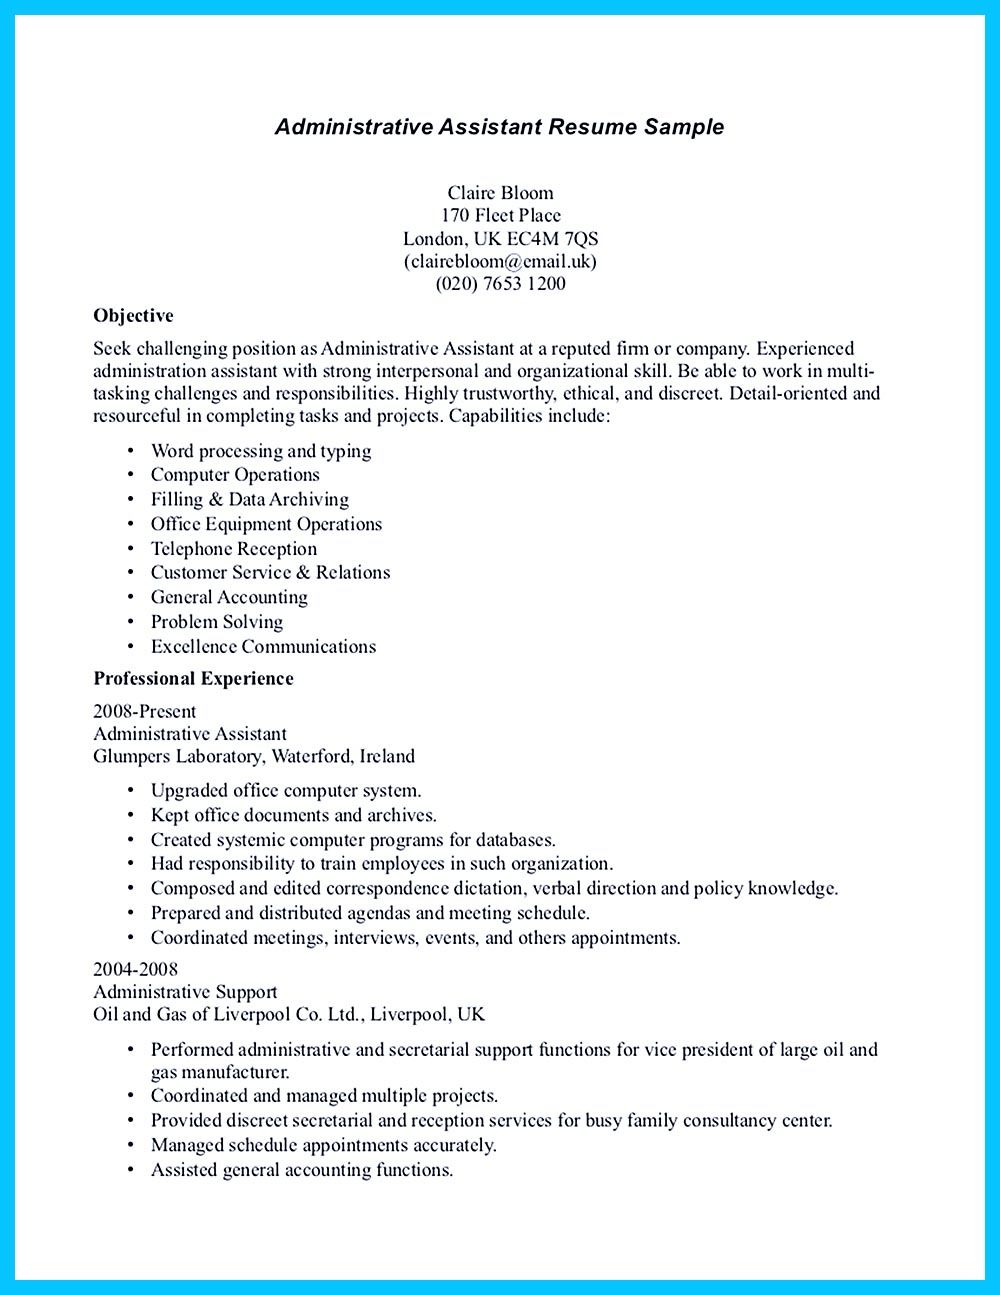 objective for resume medical assistant medical assistant resume sample medical resume templates 14 medical assistant resume uxhandycom medical assistant - Resume Objective For Executive Assistant